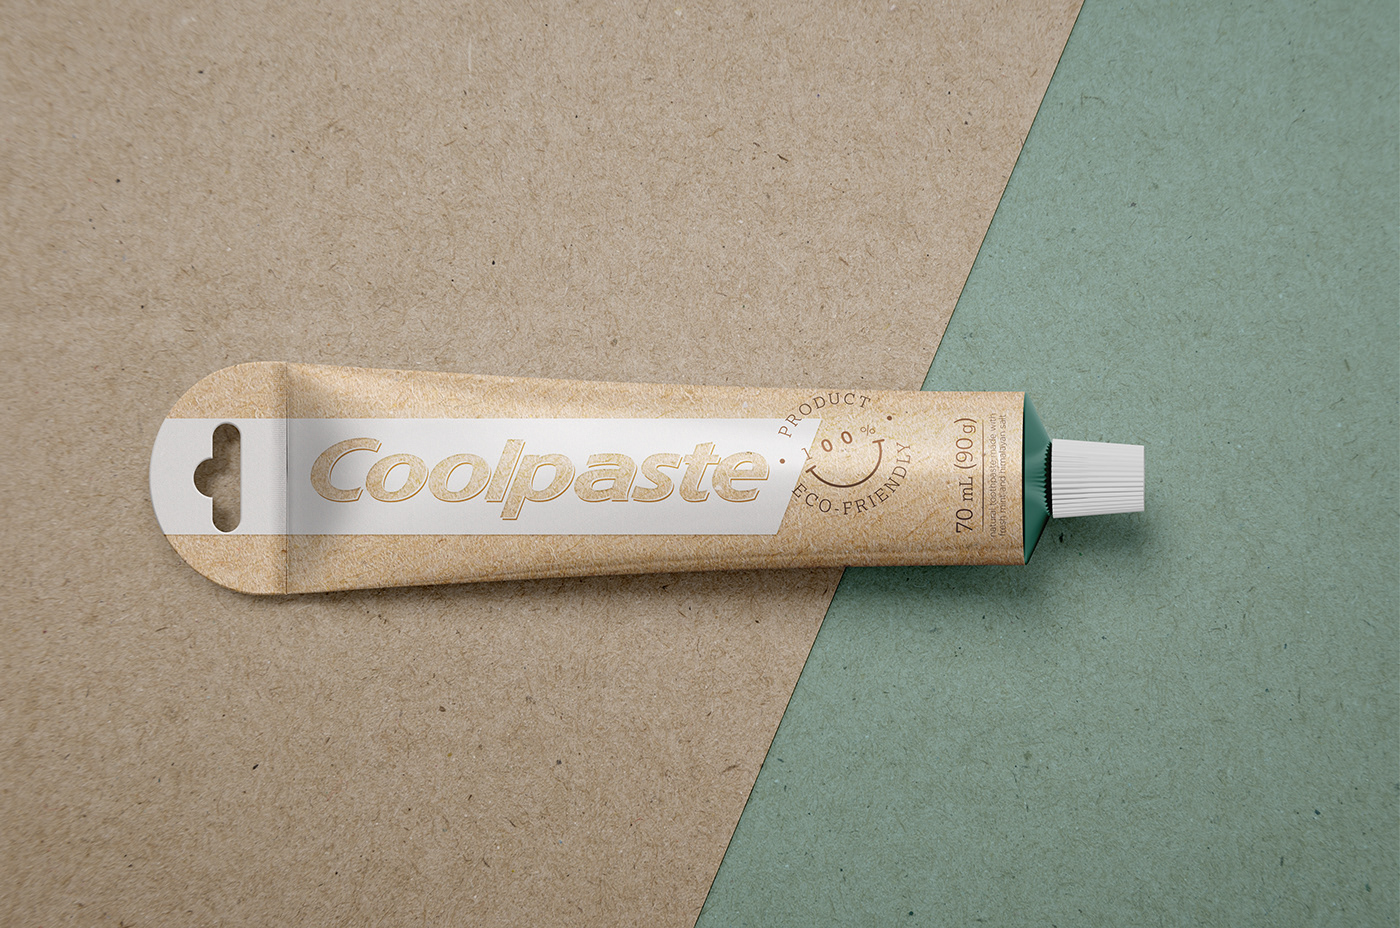 tooth paste,package design ,Sustainable,colgate,pasta de dente,embalagem,biodegradable,toothpaste,cosmetics,oral care